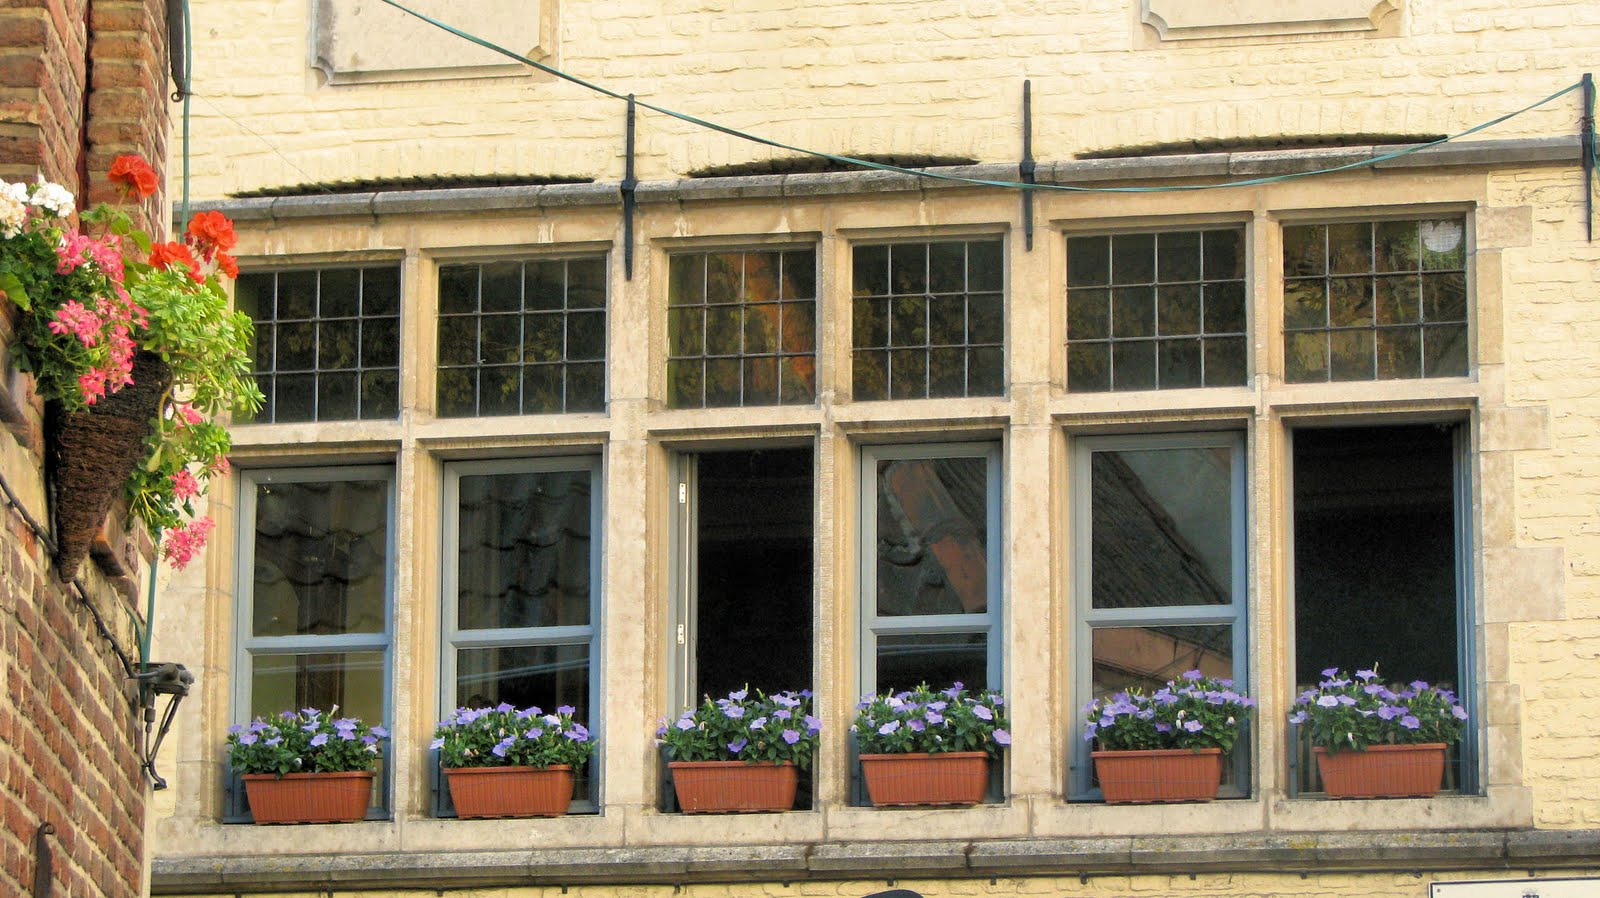 Window boxes are everywhere. I could do ten blog posts